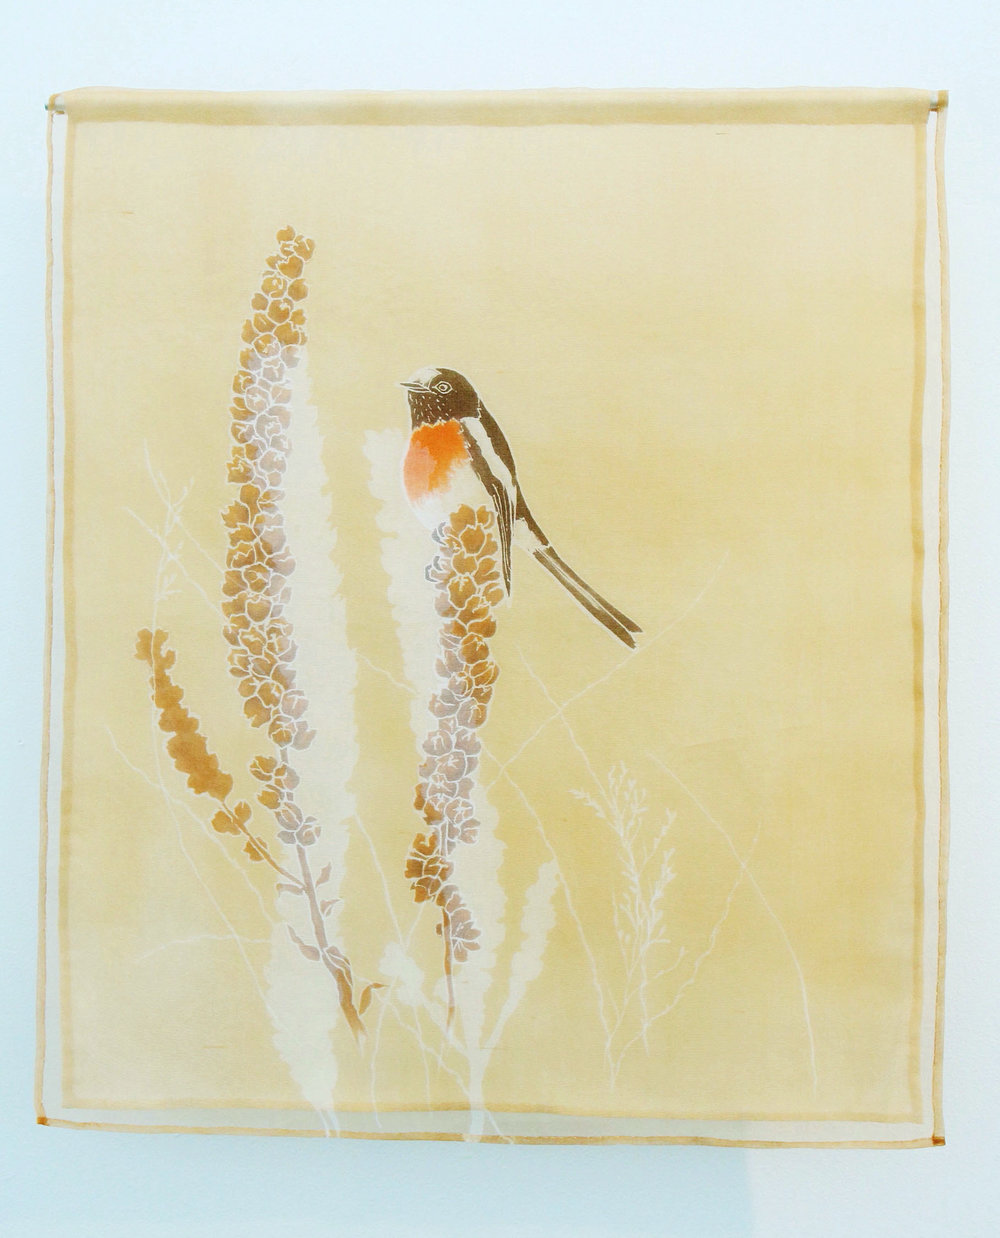 Scarlet Robin   yuzen on silk organza, natural dye from Eucalyptus and chemical dyes, 2015